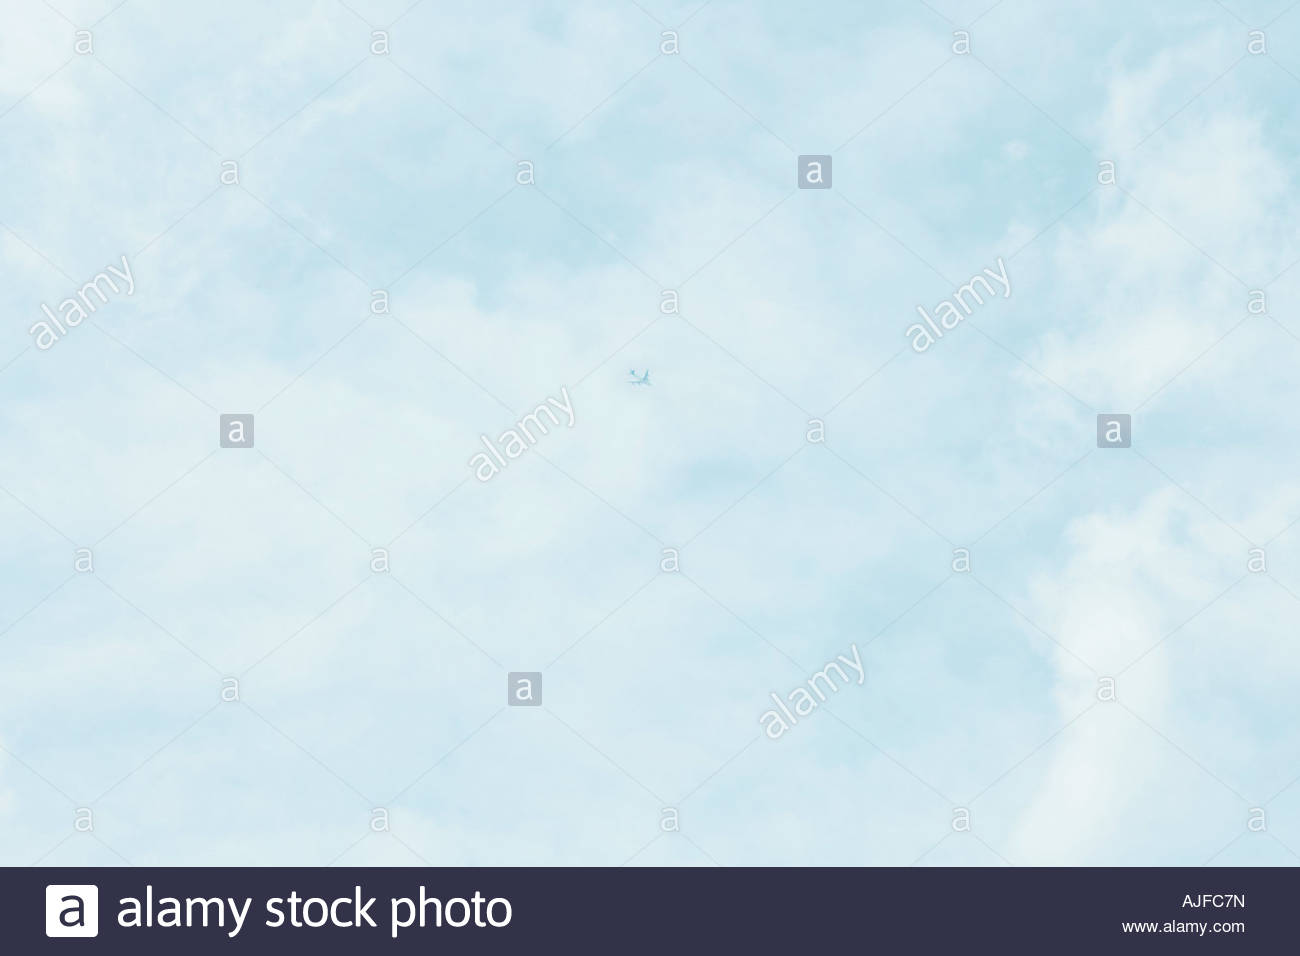 Airplane in cloudy sky - Stock Image